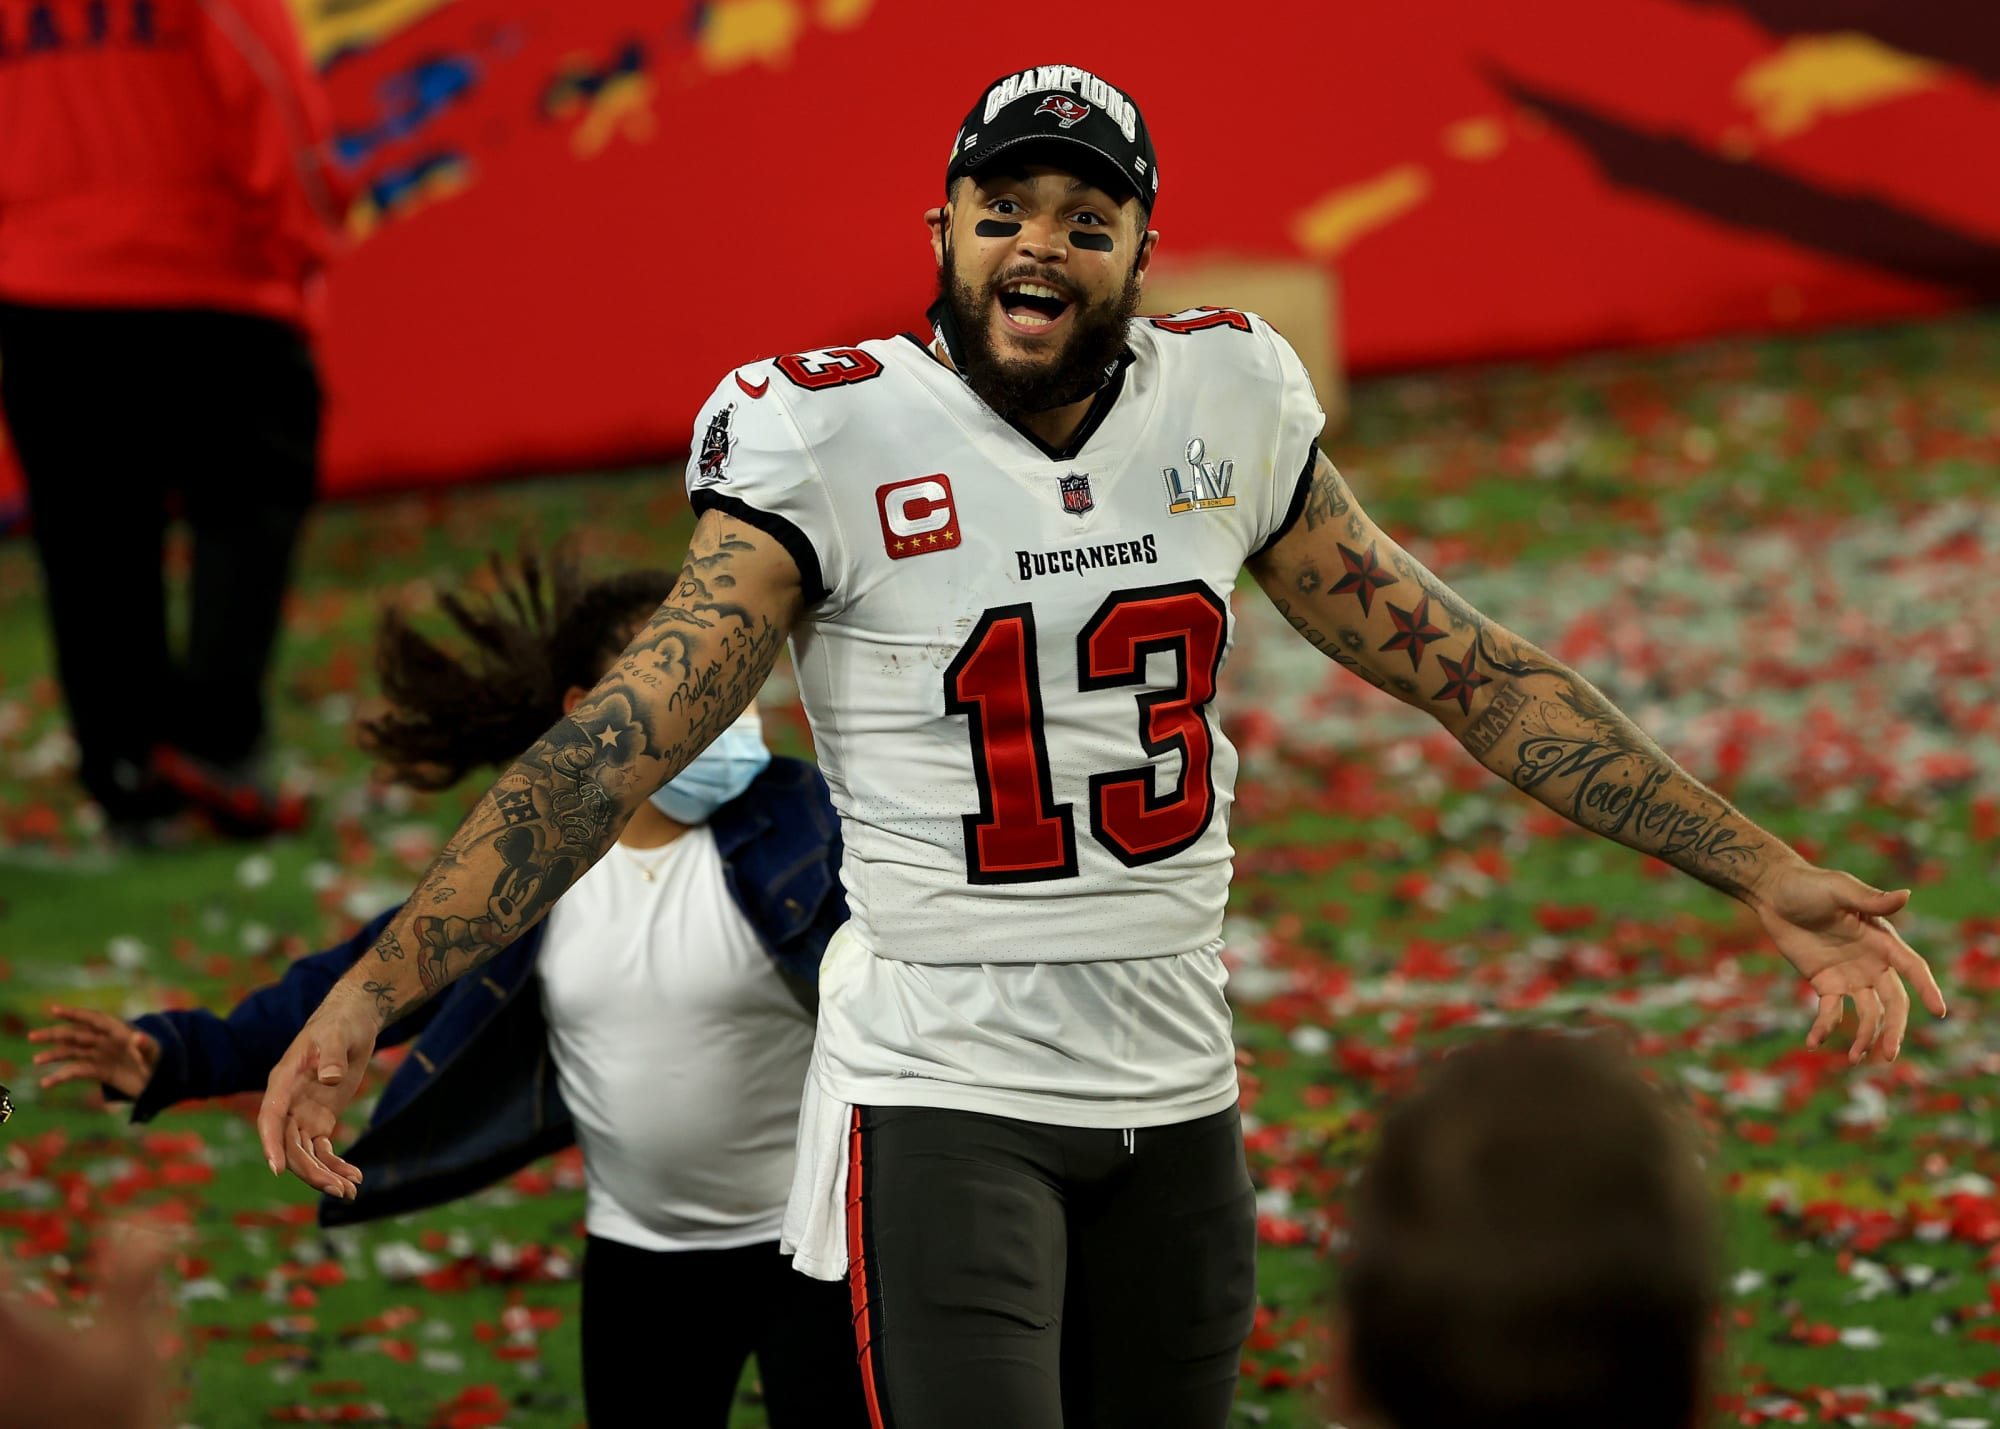 Buccaneers: Mike Evans primed to extend record in 2021